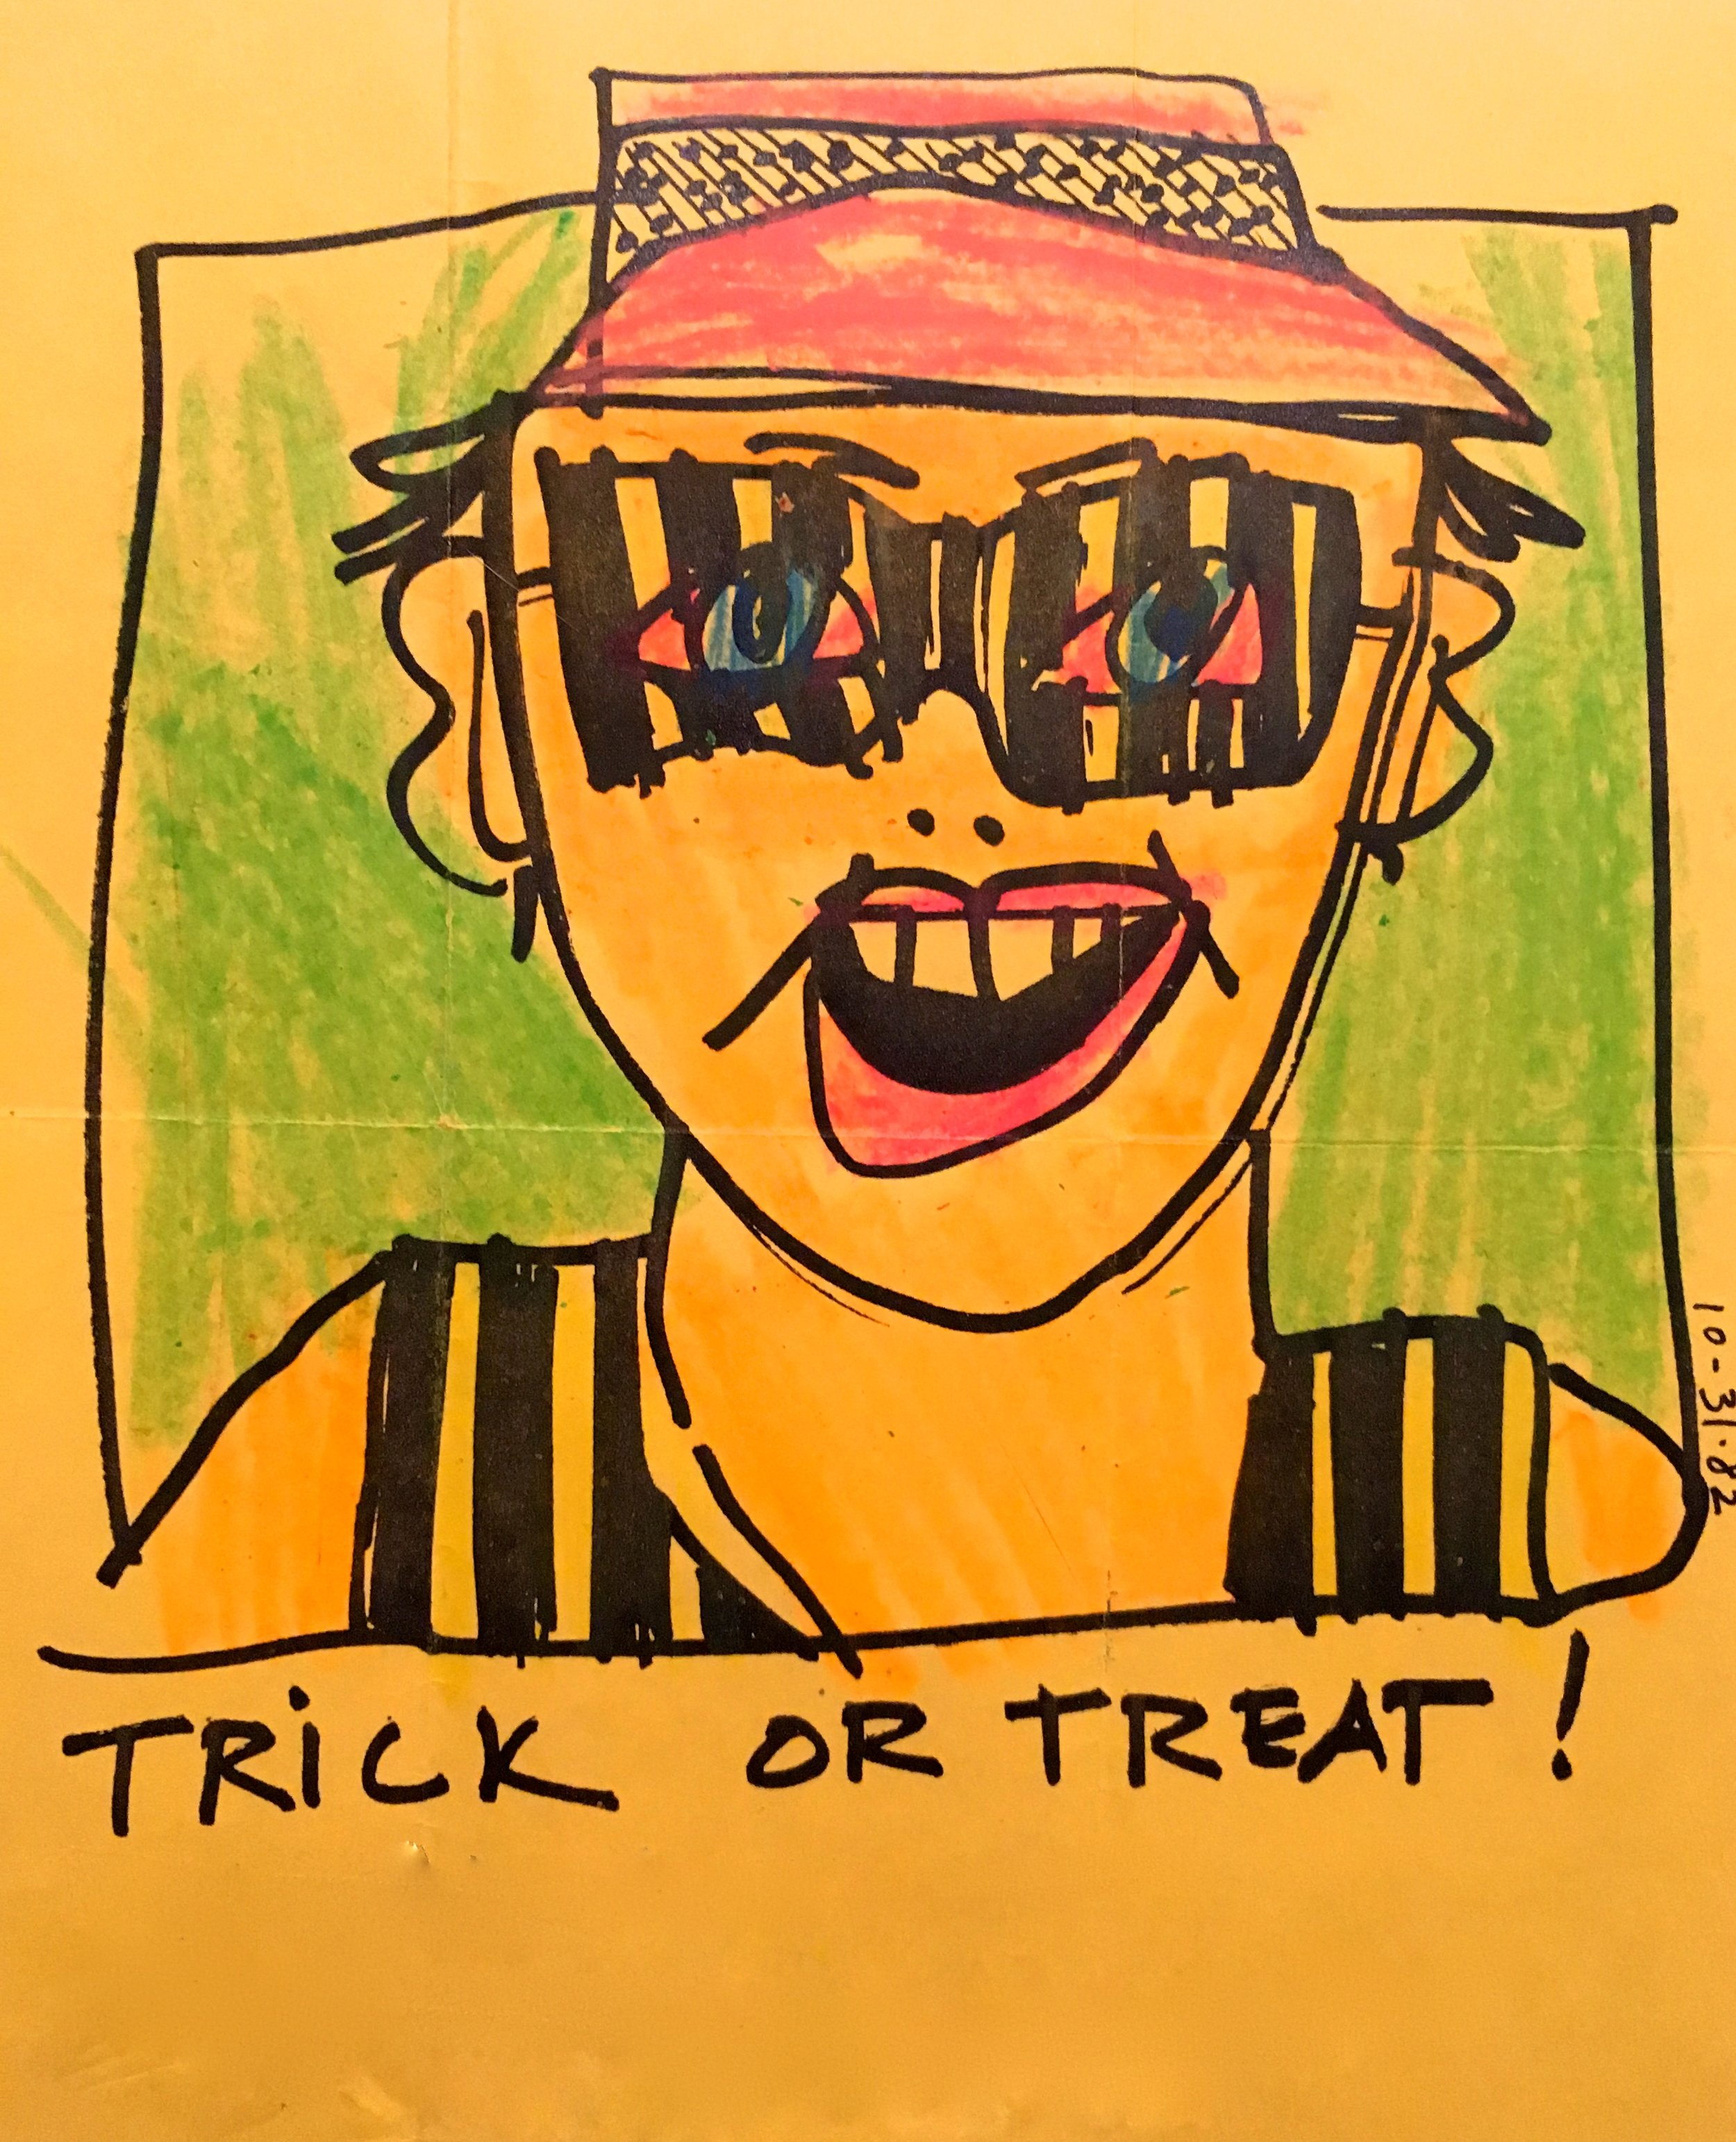 Trick or Treat, 1982